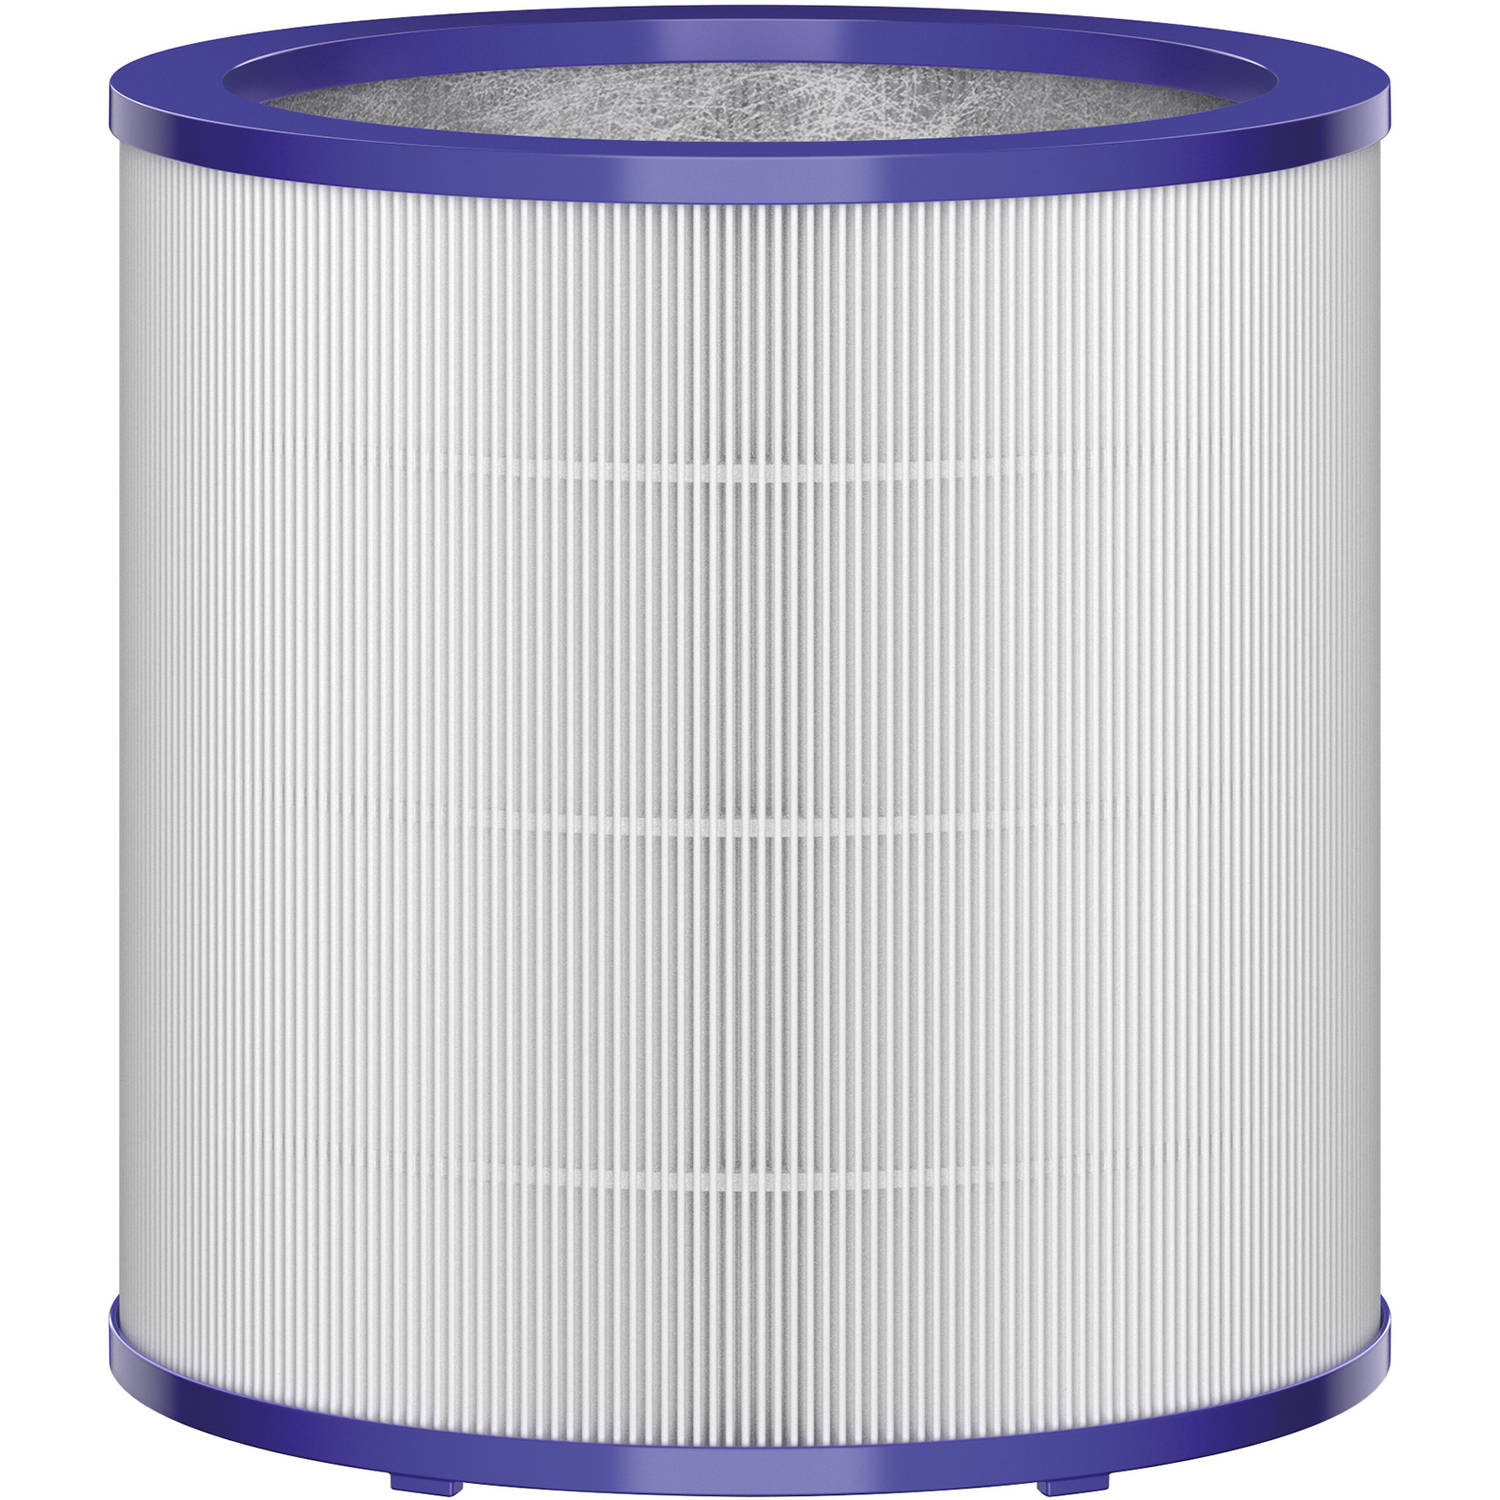 Dyson Pure Cool Link Filter